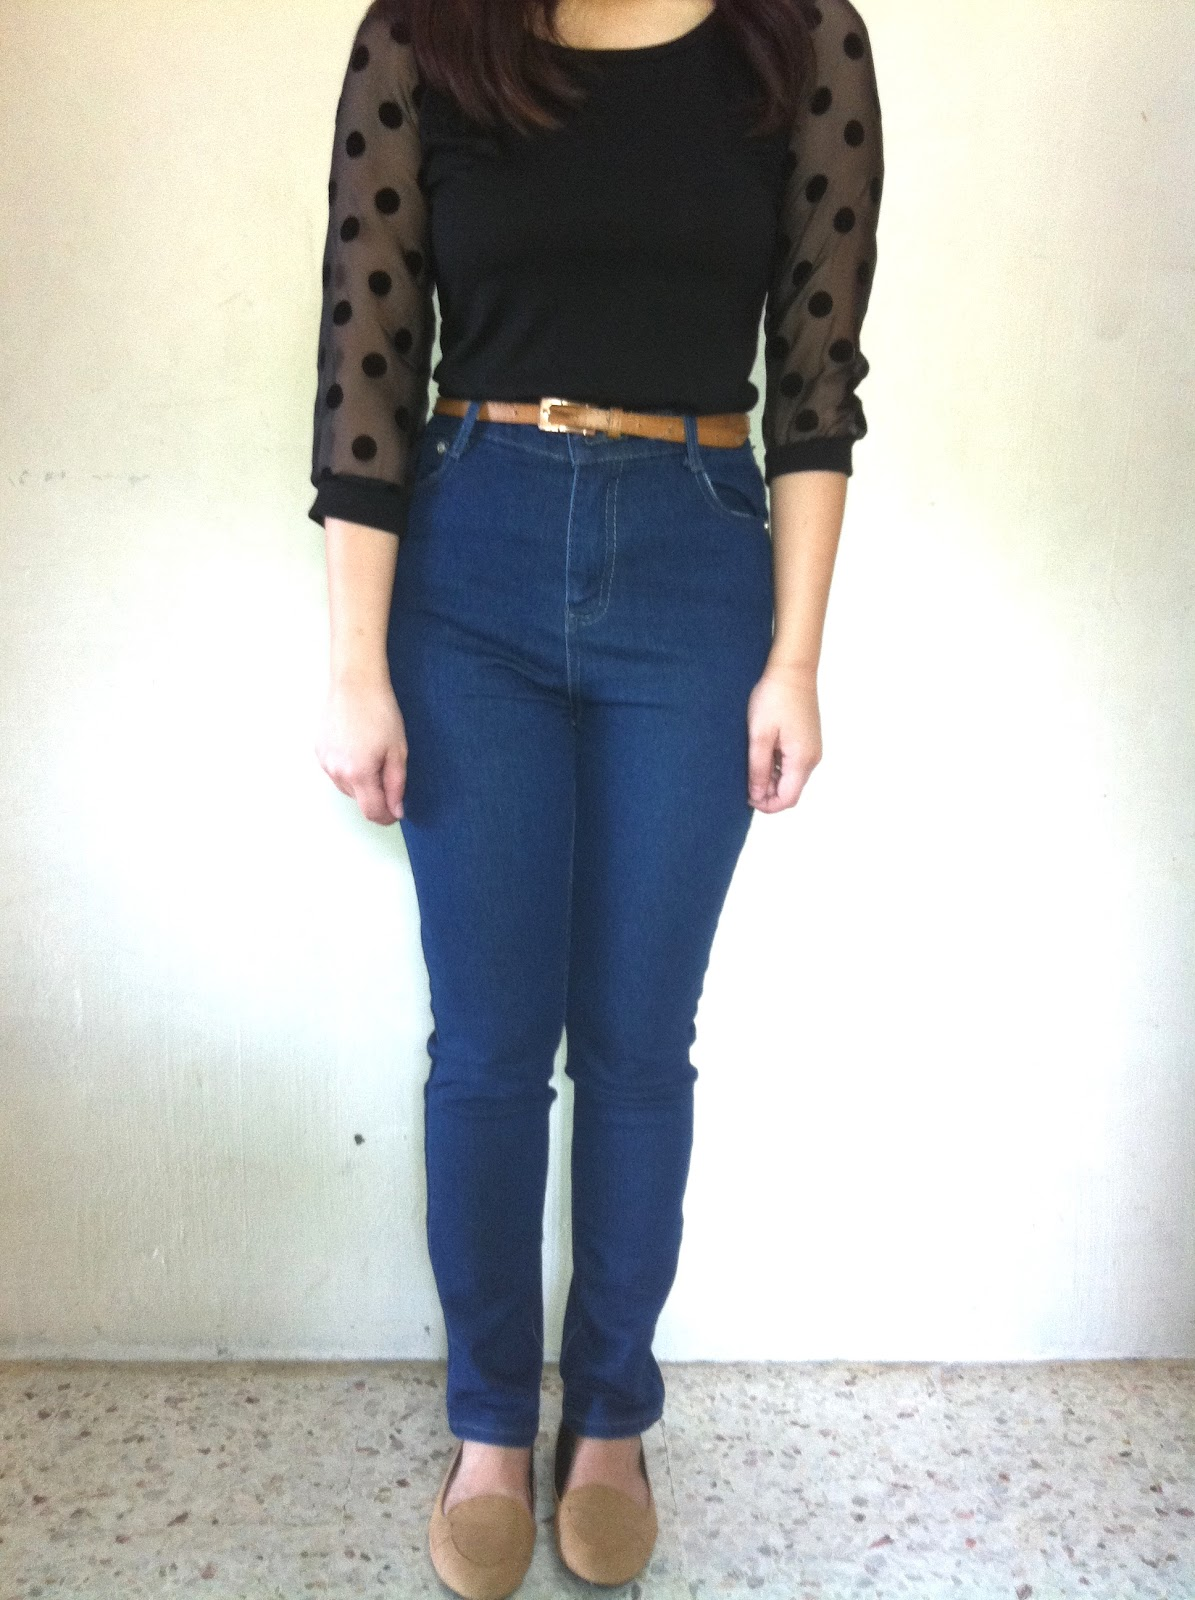 High Waisted Jeans Behold, our heavenly high waist jeans. The ultimate feel-good-look-great jean that makes bottoms peachy, tummies flat and legs go on for days.